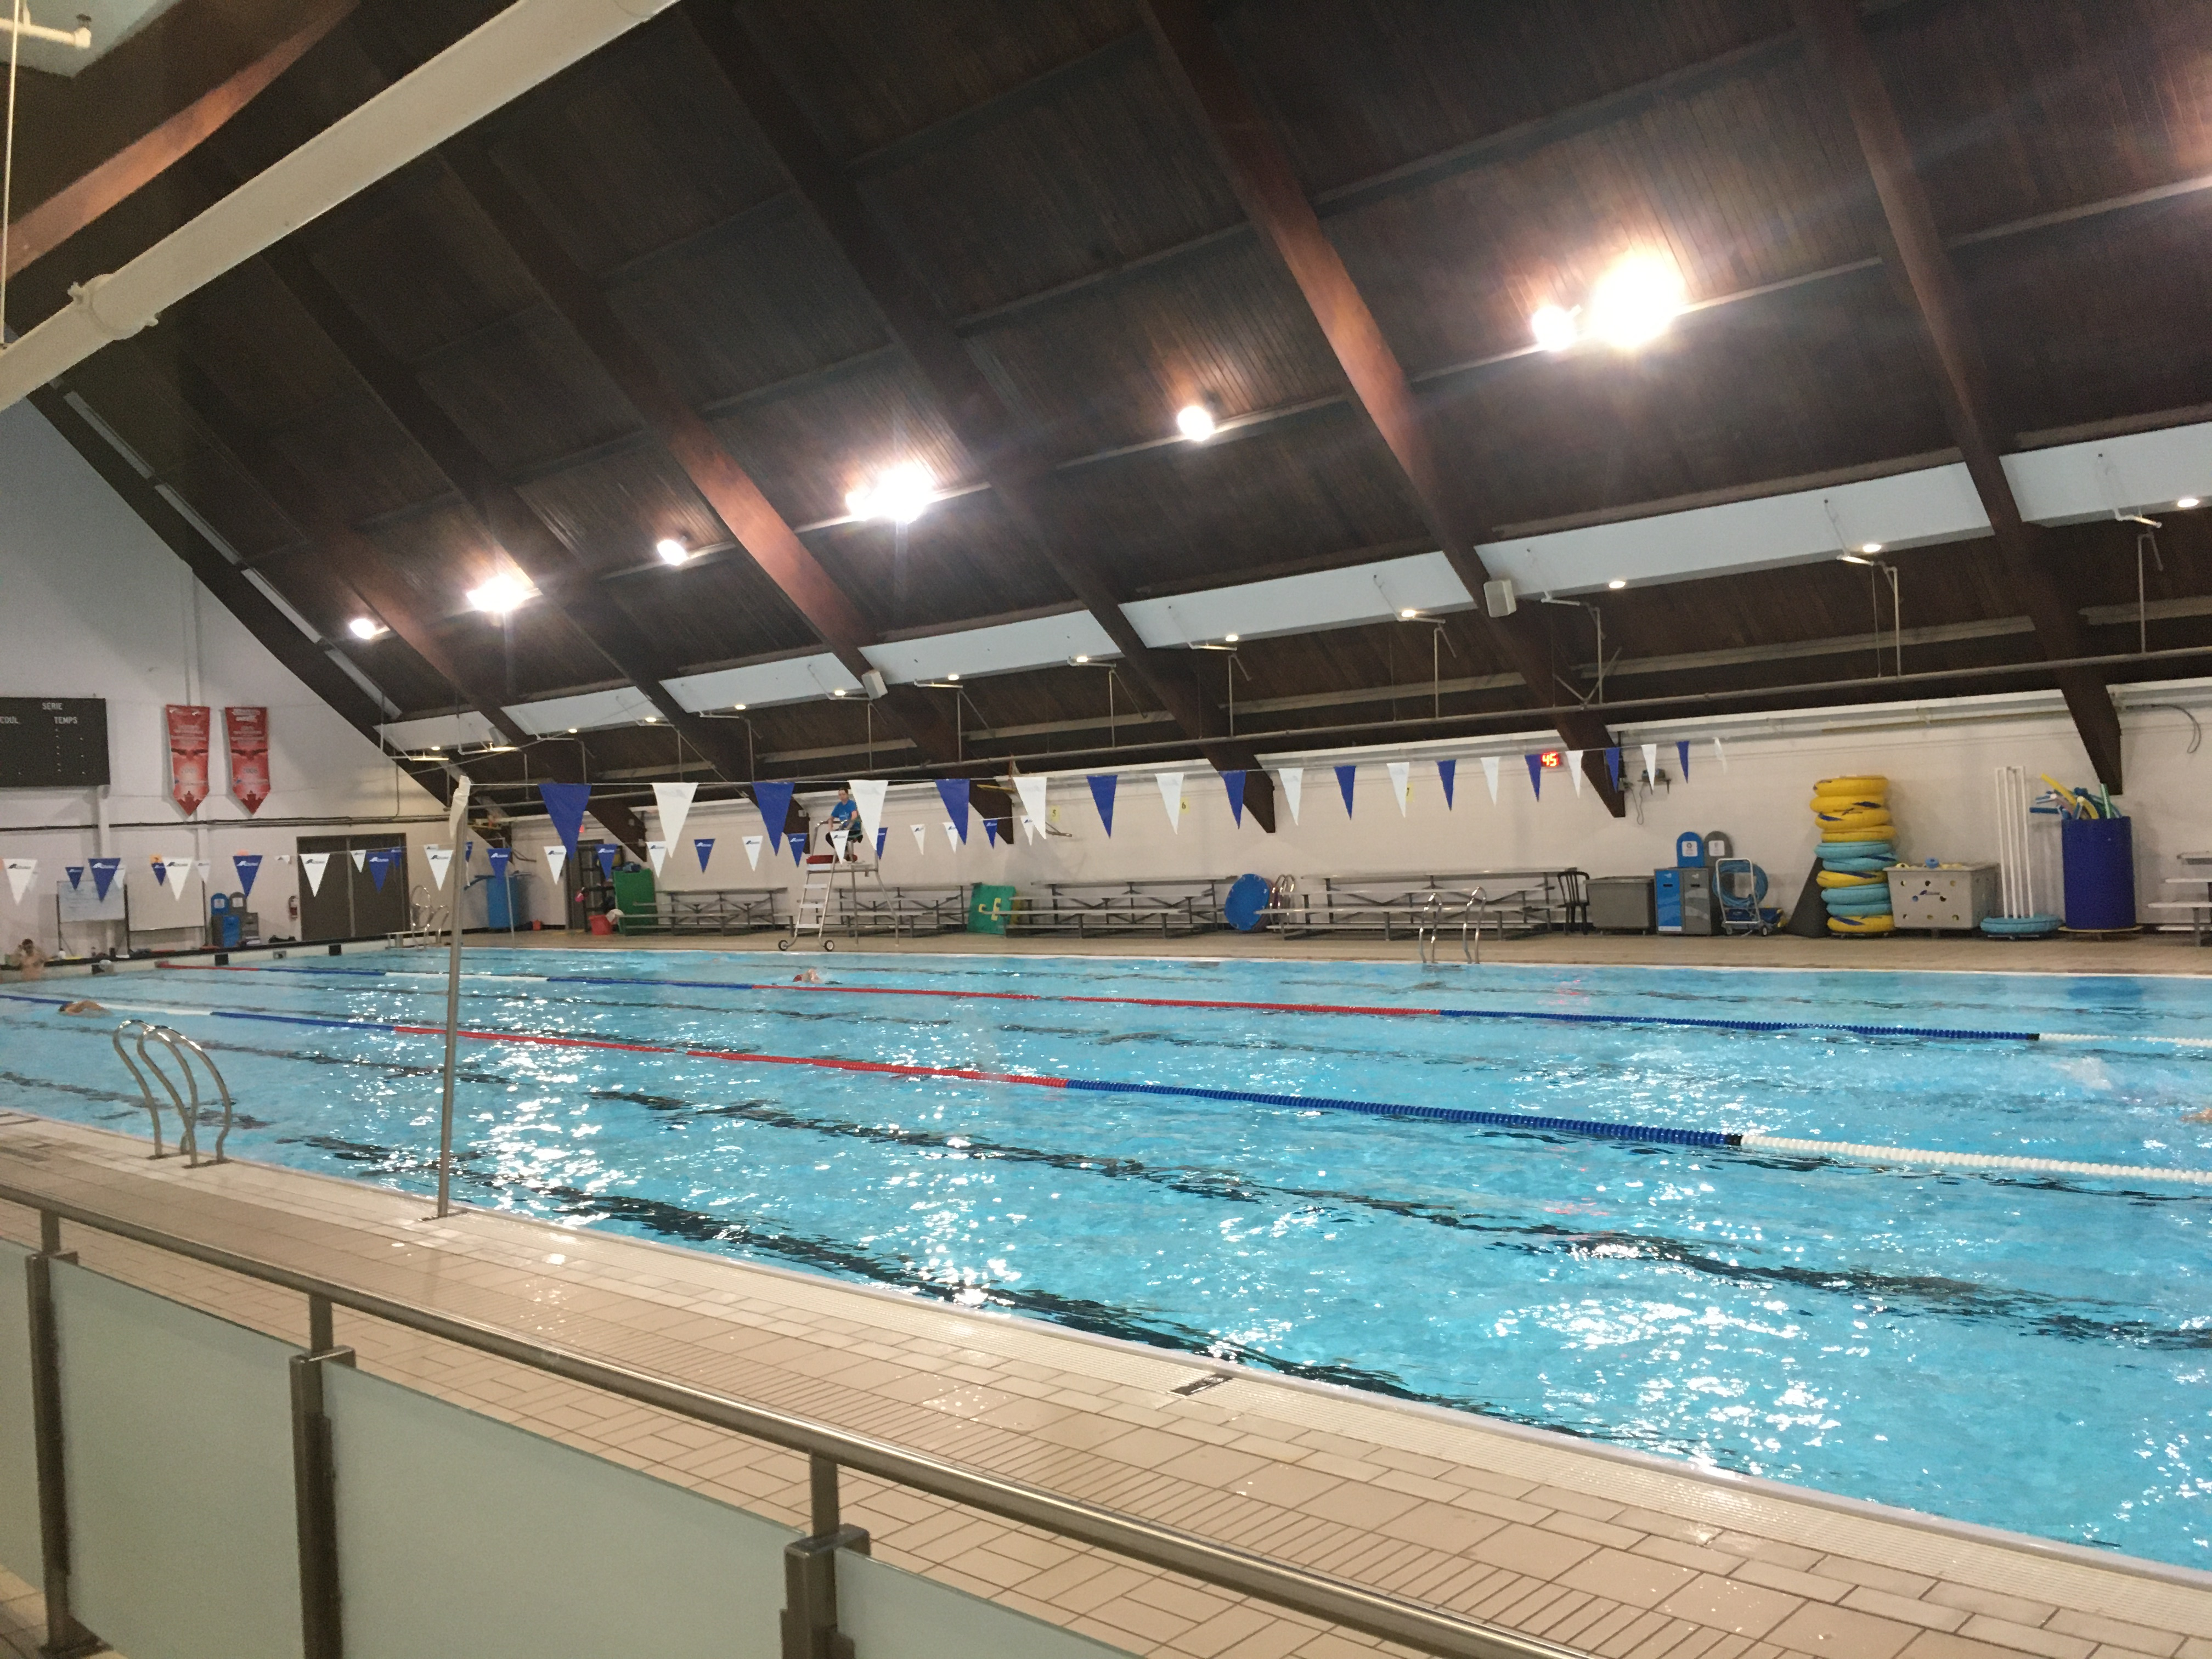 0458 - Pointe Claire Aquatic Centre - Knox Pool